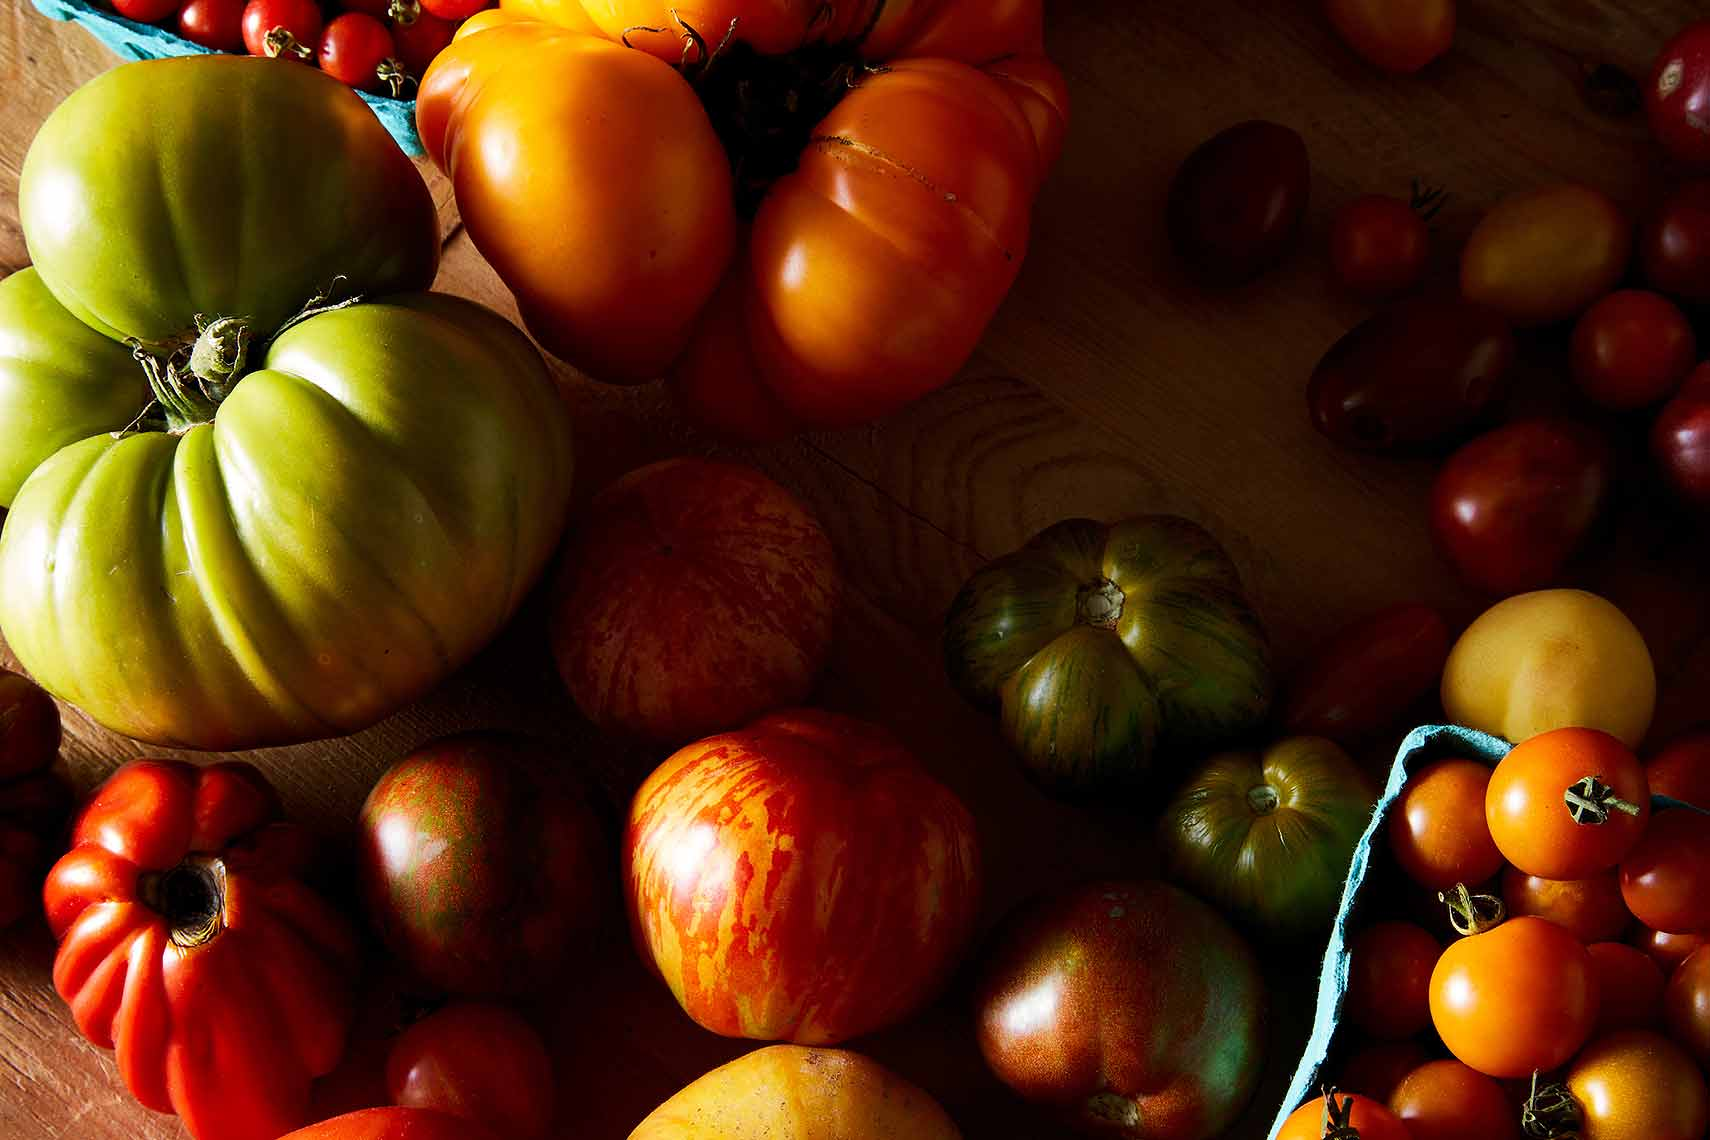 2016-0811_tomato-bounty_james-ransom-393